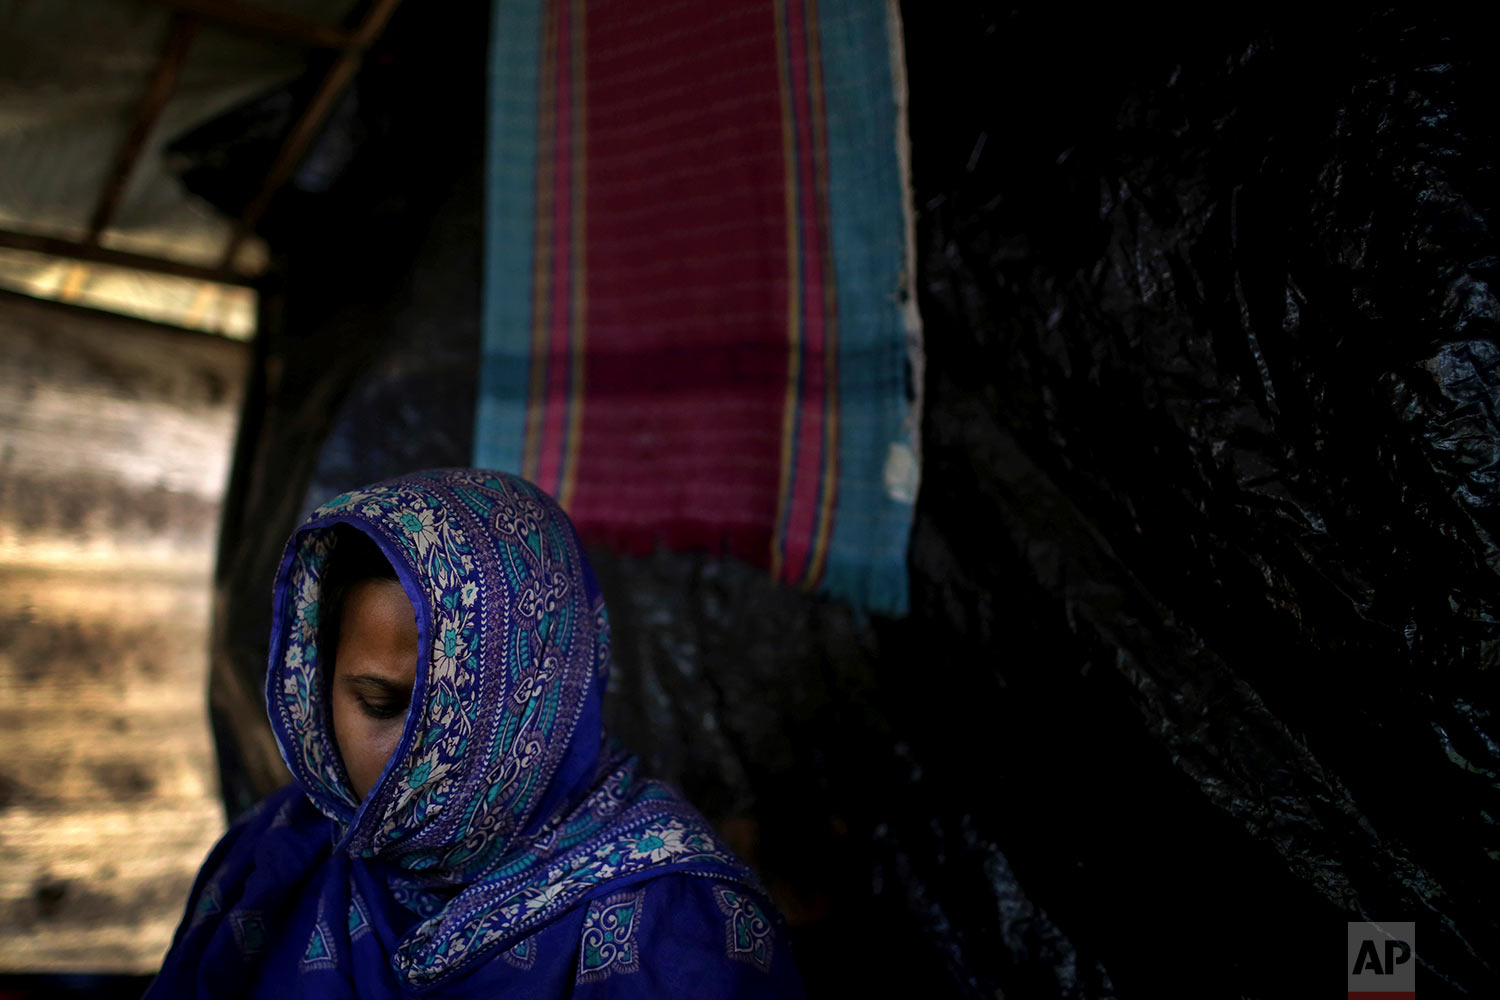 In this Monday, Nov. 20, 2017, photo, M, 35, mother of three, who says she was raped by members of Myanmar's armed forces in late August, is photographed in her friend's tent in Kutupalong refugee camp in Bangladesh.  (AP Photo/Wong Maye-E)